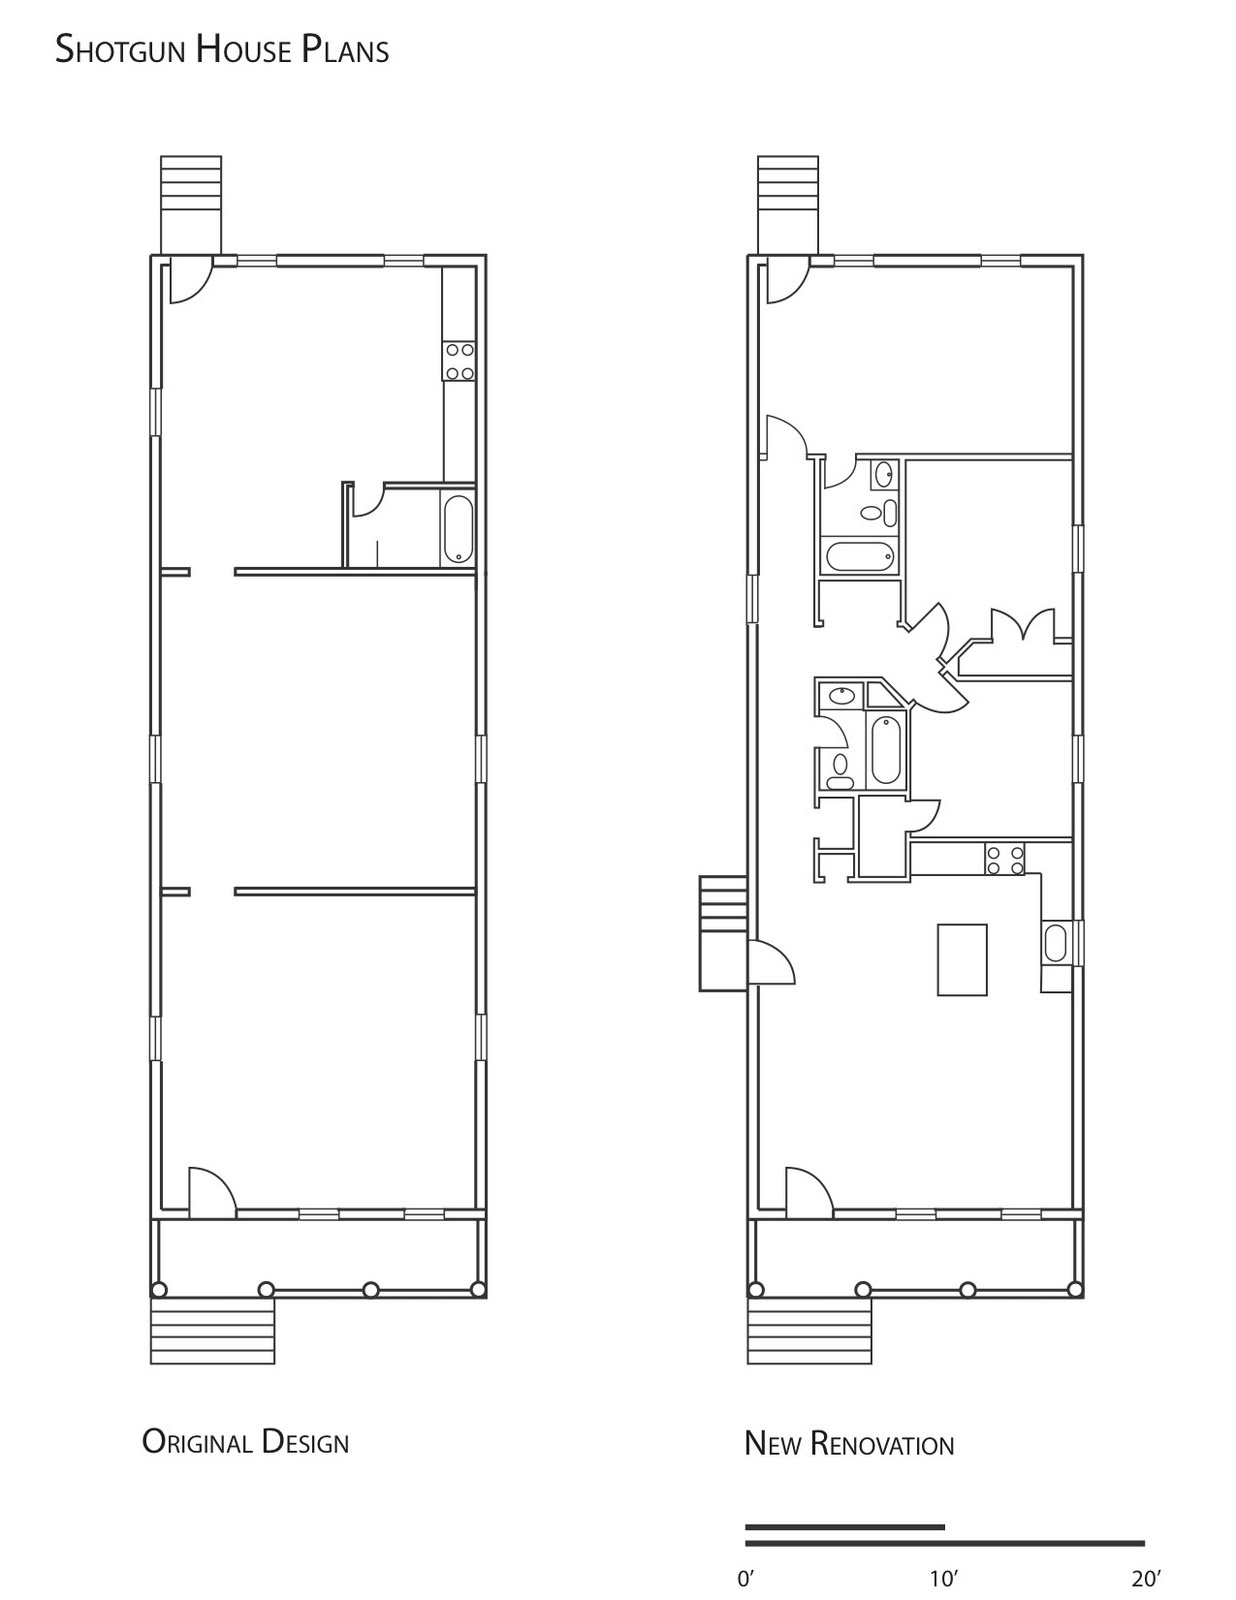 December 2012 floor plans for Shotgun home floor plans